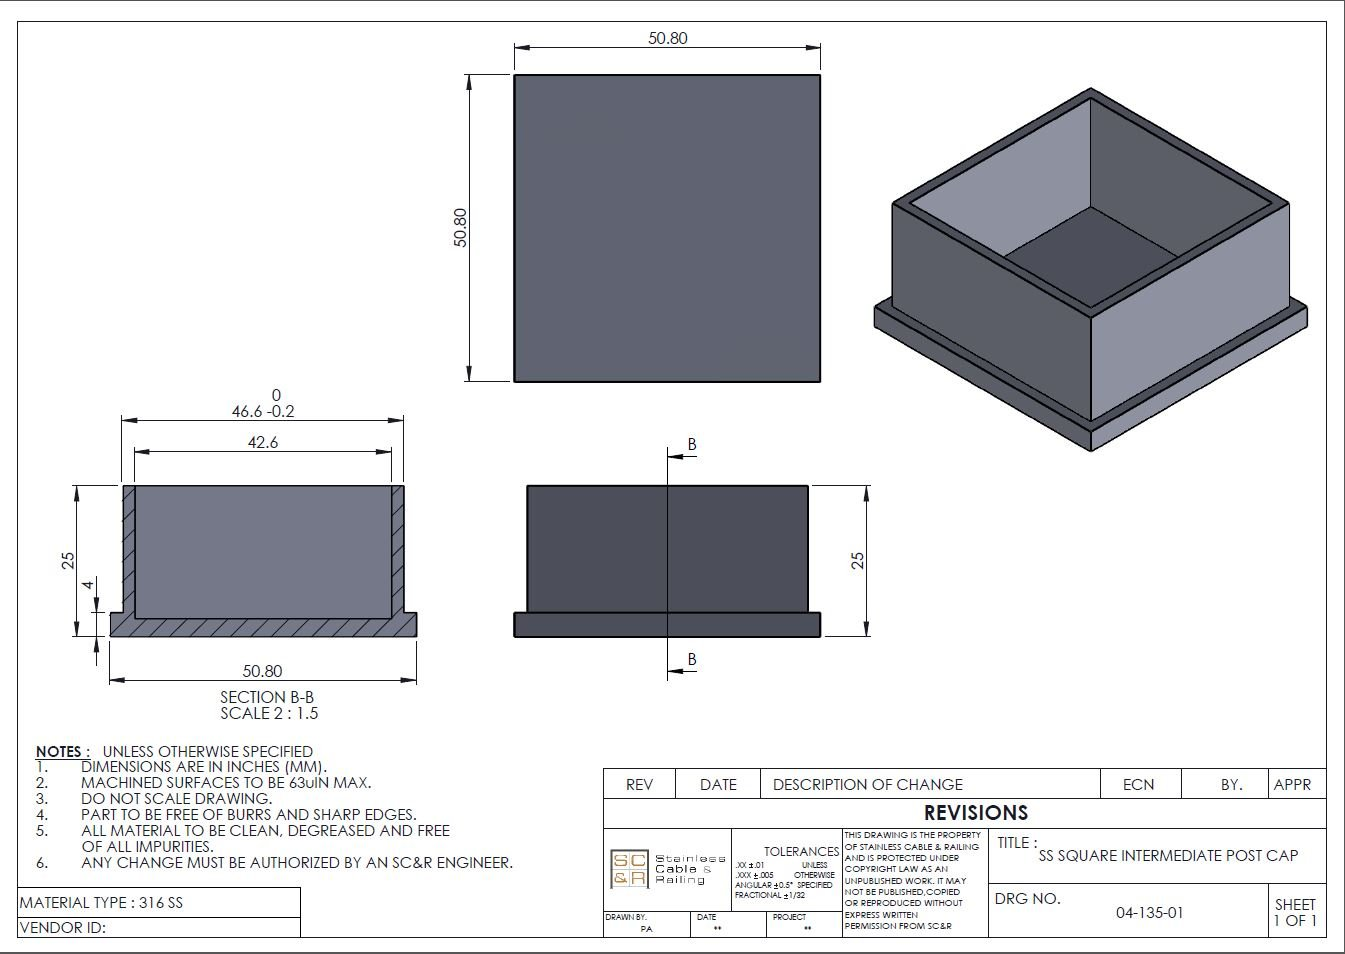 T 316 Stainless Steel End Square Post Cap Cover For Top And Bottom Engineer Scale Diagram Of Our Terminal Intermediate On Cable Rail Deck Posts